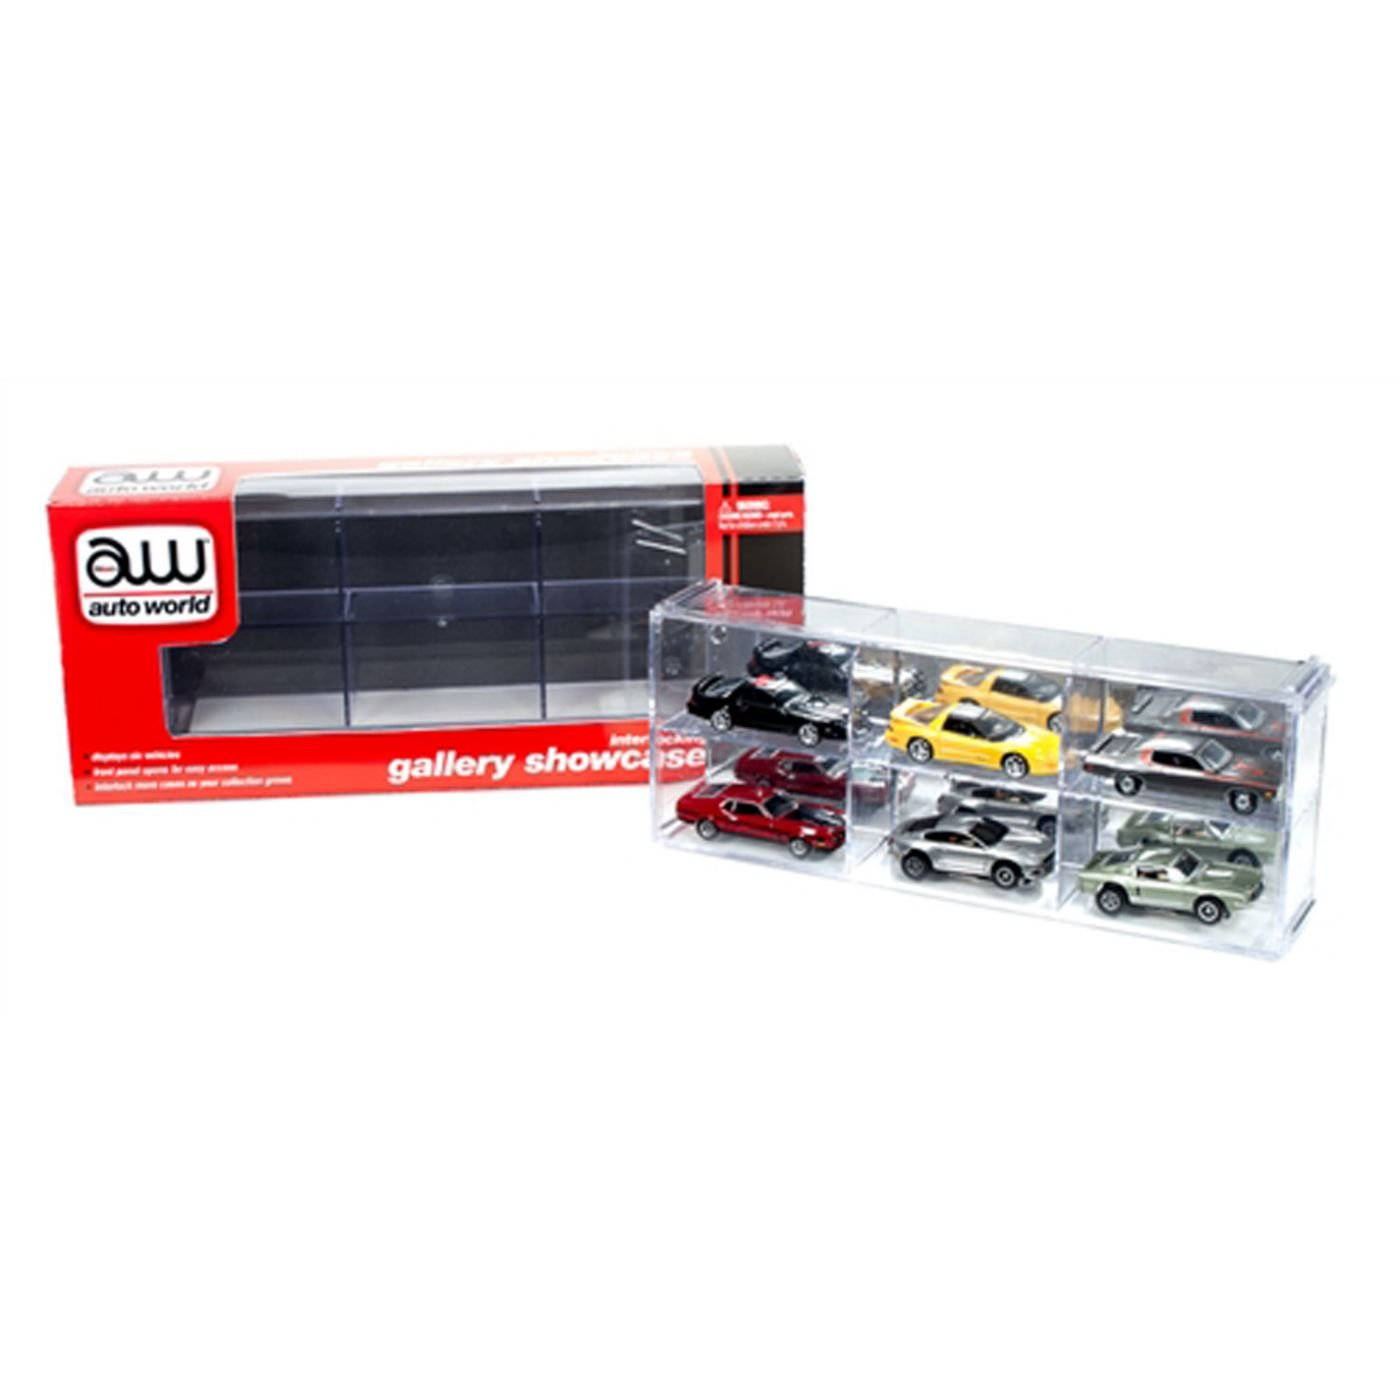 Interlocking 6 Cars Collectible Display Show case for 1 64 Scale Model Cars by Autoworld AWDC003